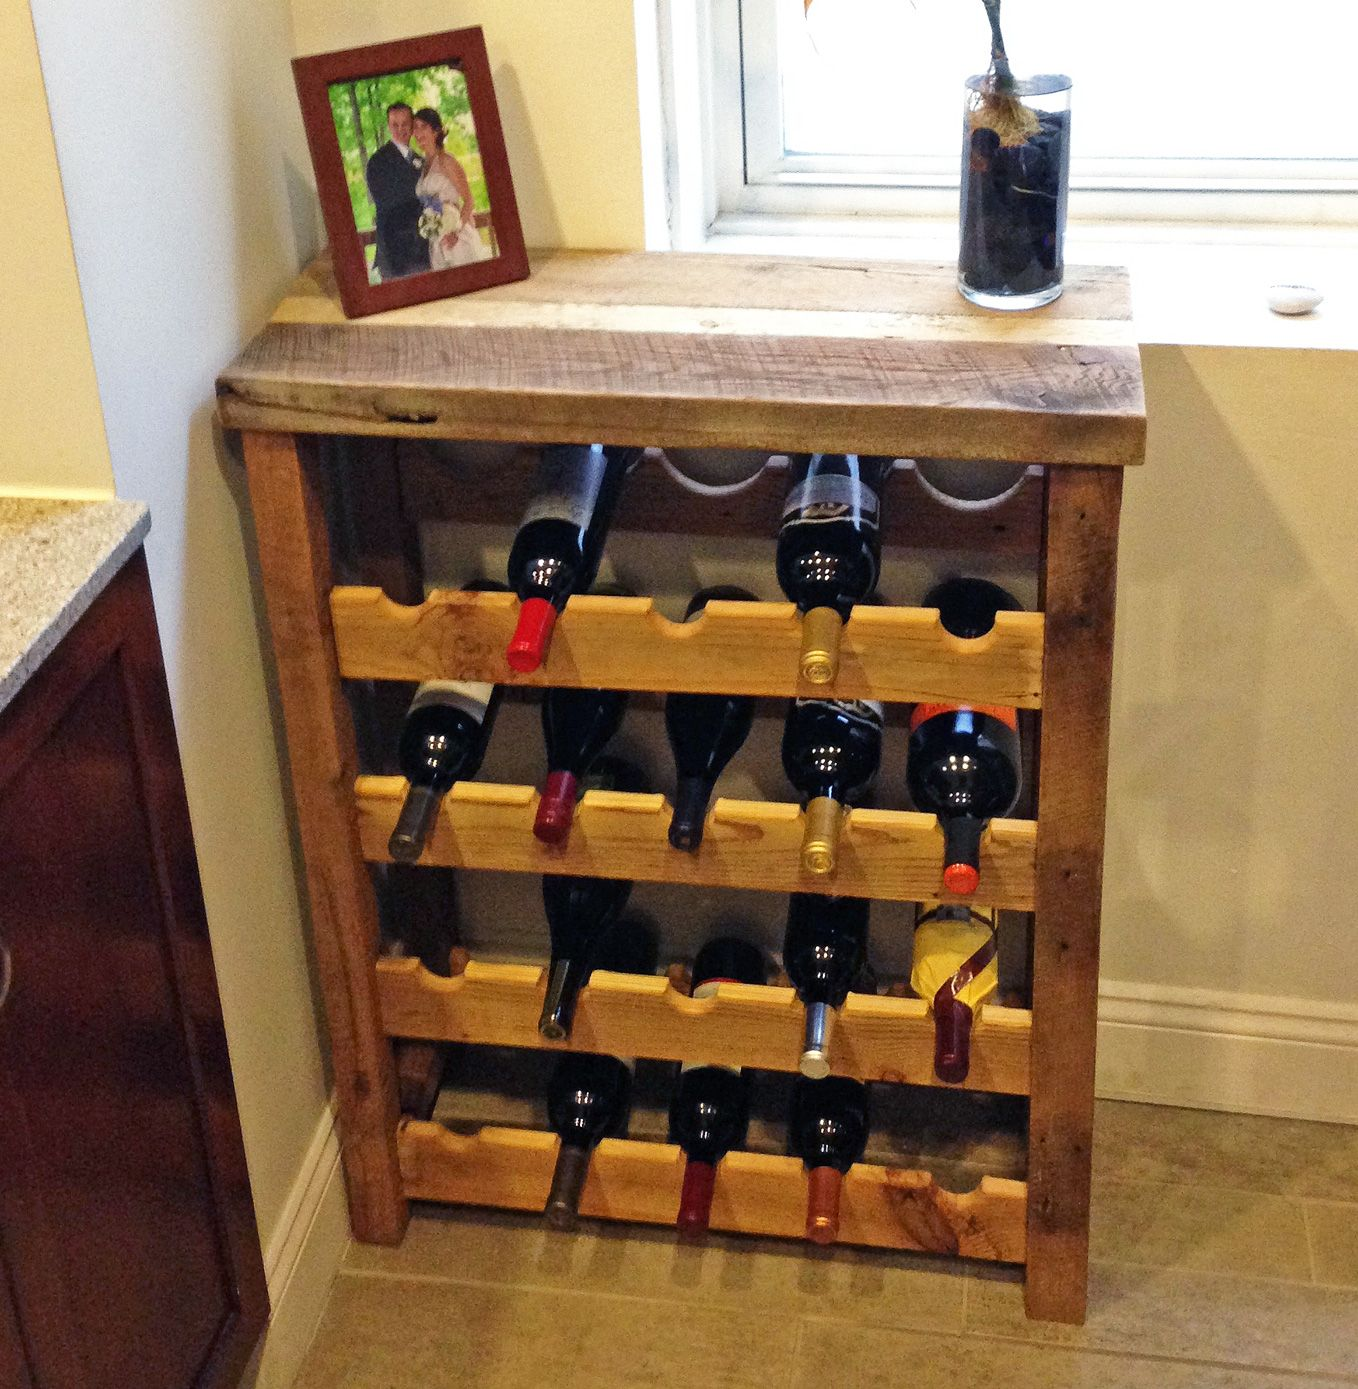 20 Small Home Bar Ideas And Space Savvy Designs: 20 Bottle Wine Rack